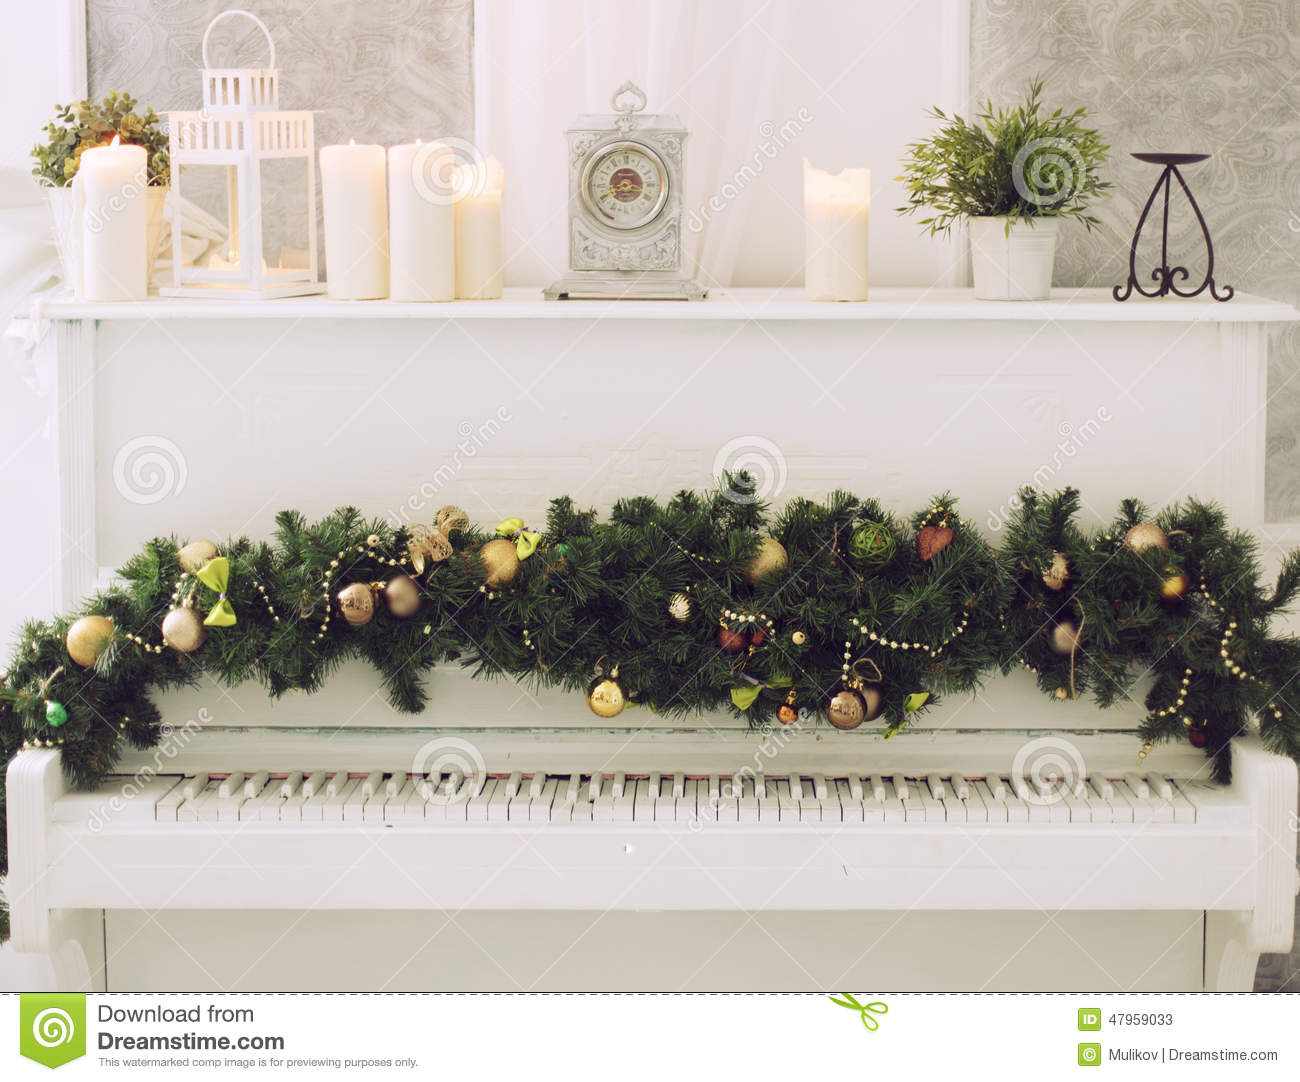 Christmas Piano.Christmas Piano Stock Image Image Of Celebration Grunge